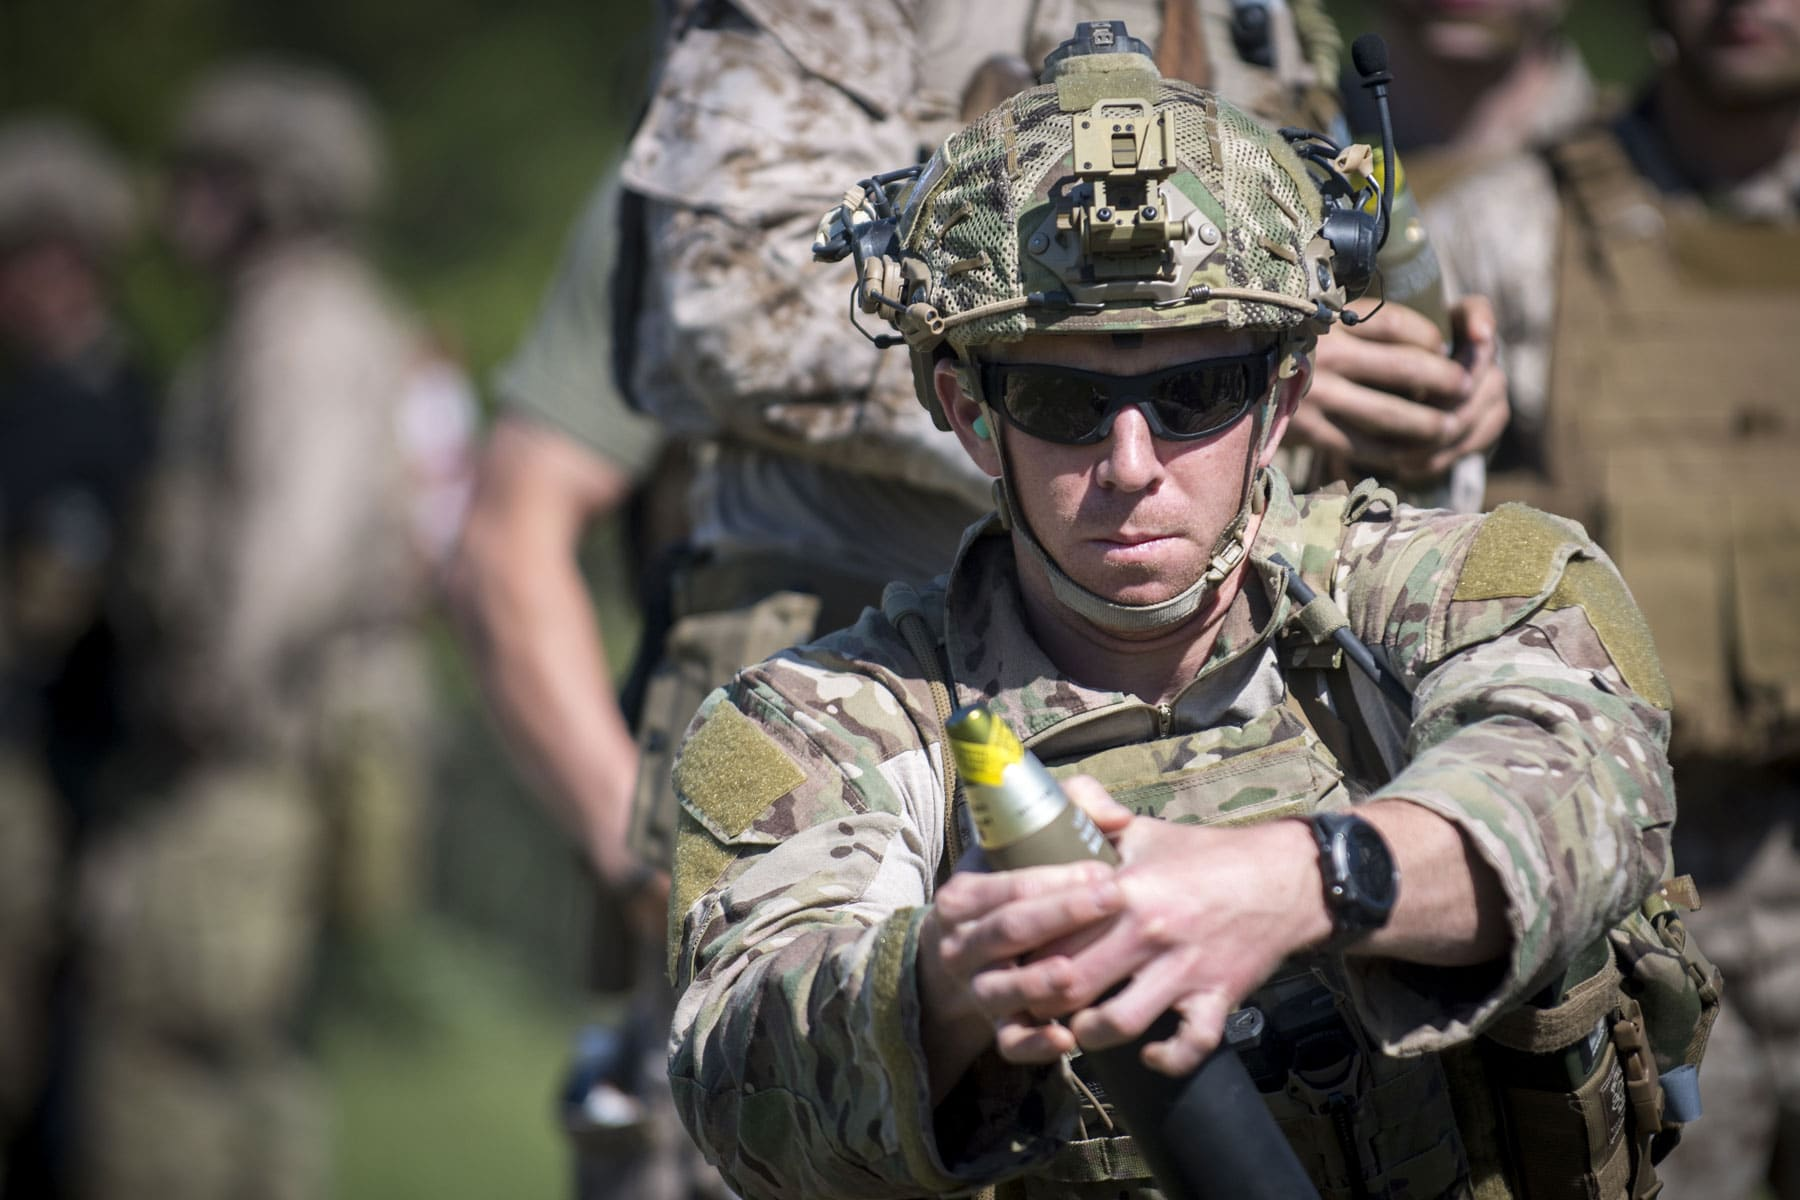 A partner force member hangs an M888 mortar round into a M224 60mm Mortar during indirect-fire training.